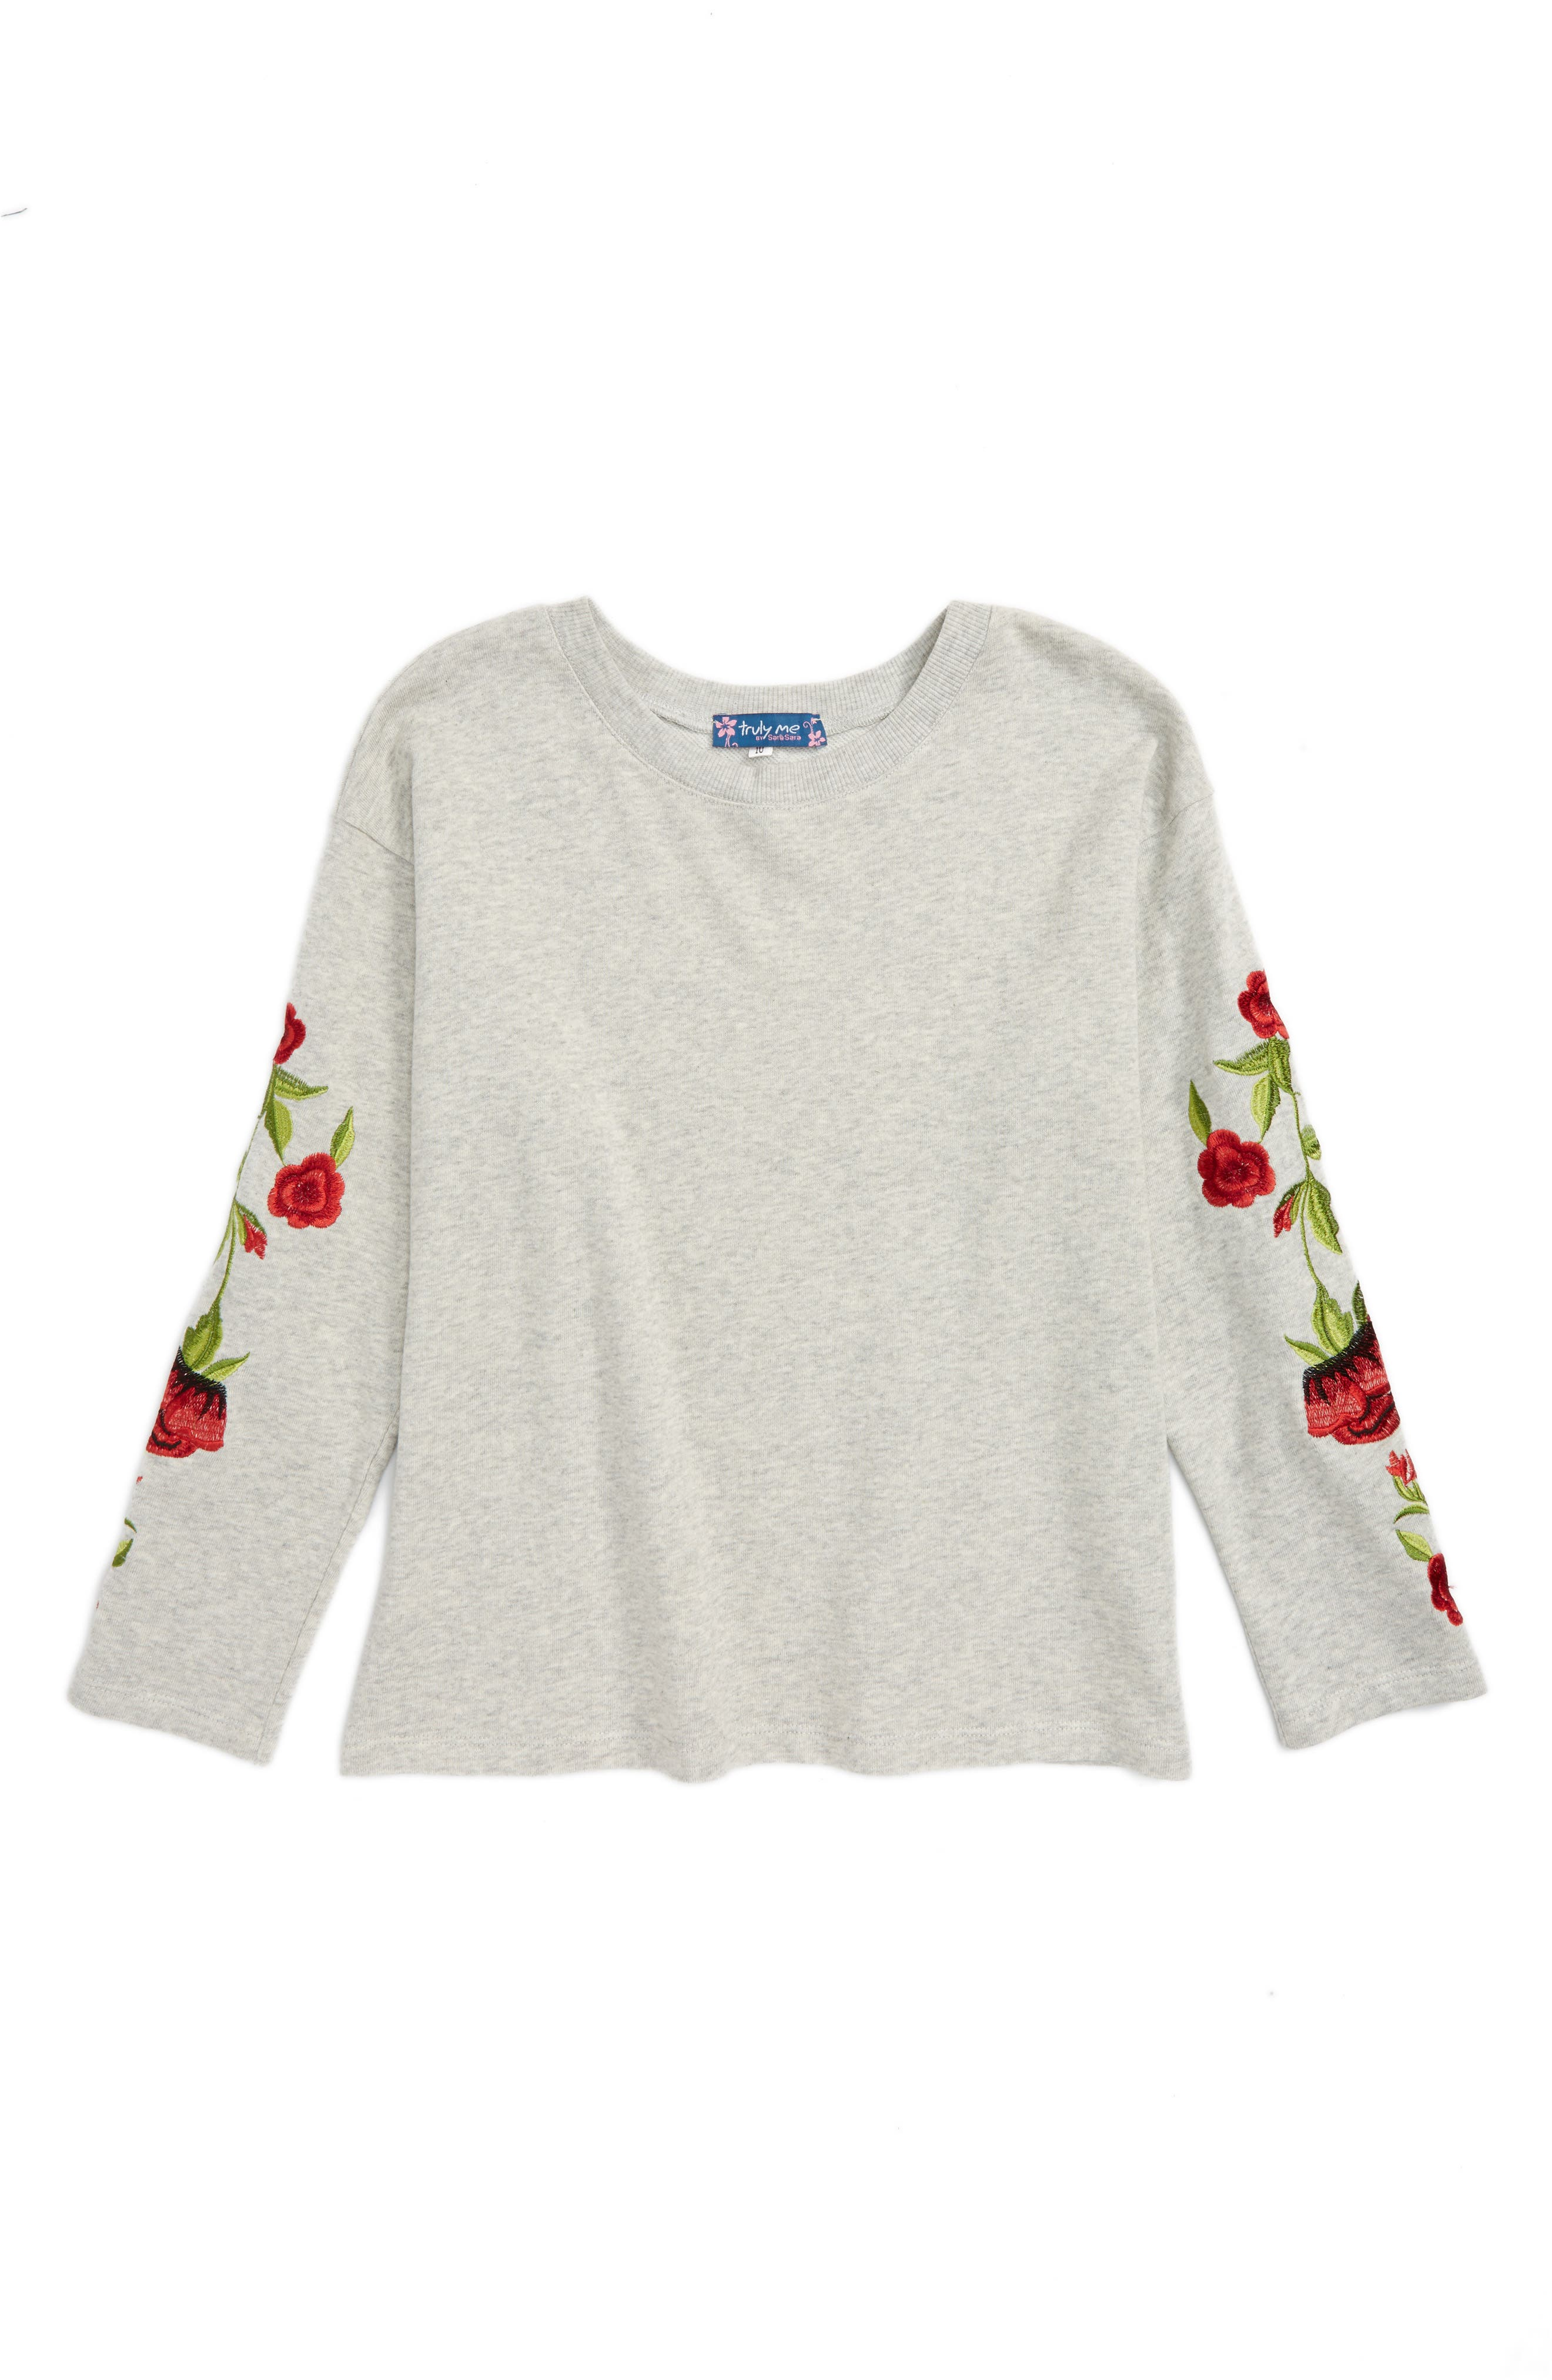 Alternate Image 1 Selected - Truly Me Embroidered Sweatshirt (Big Girls)